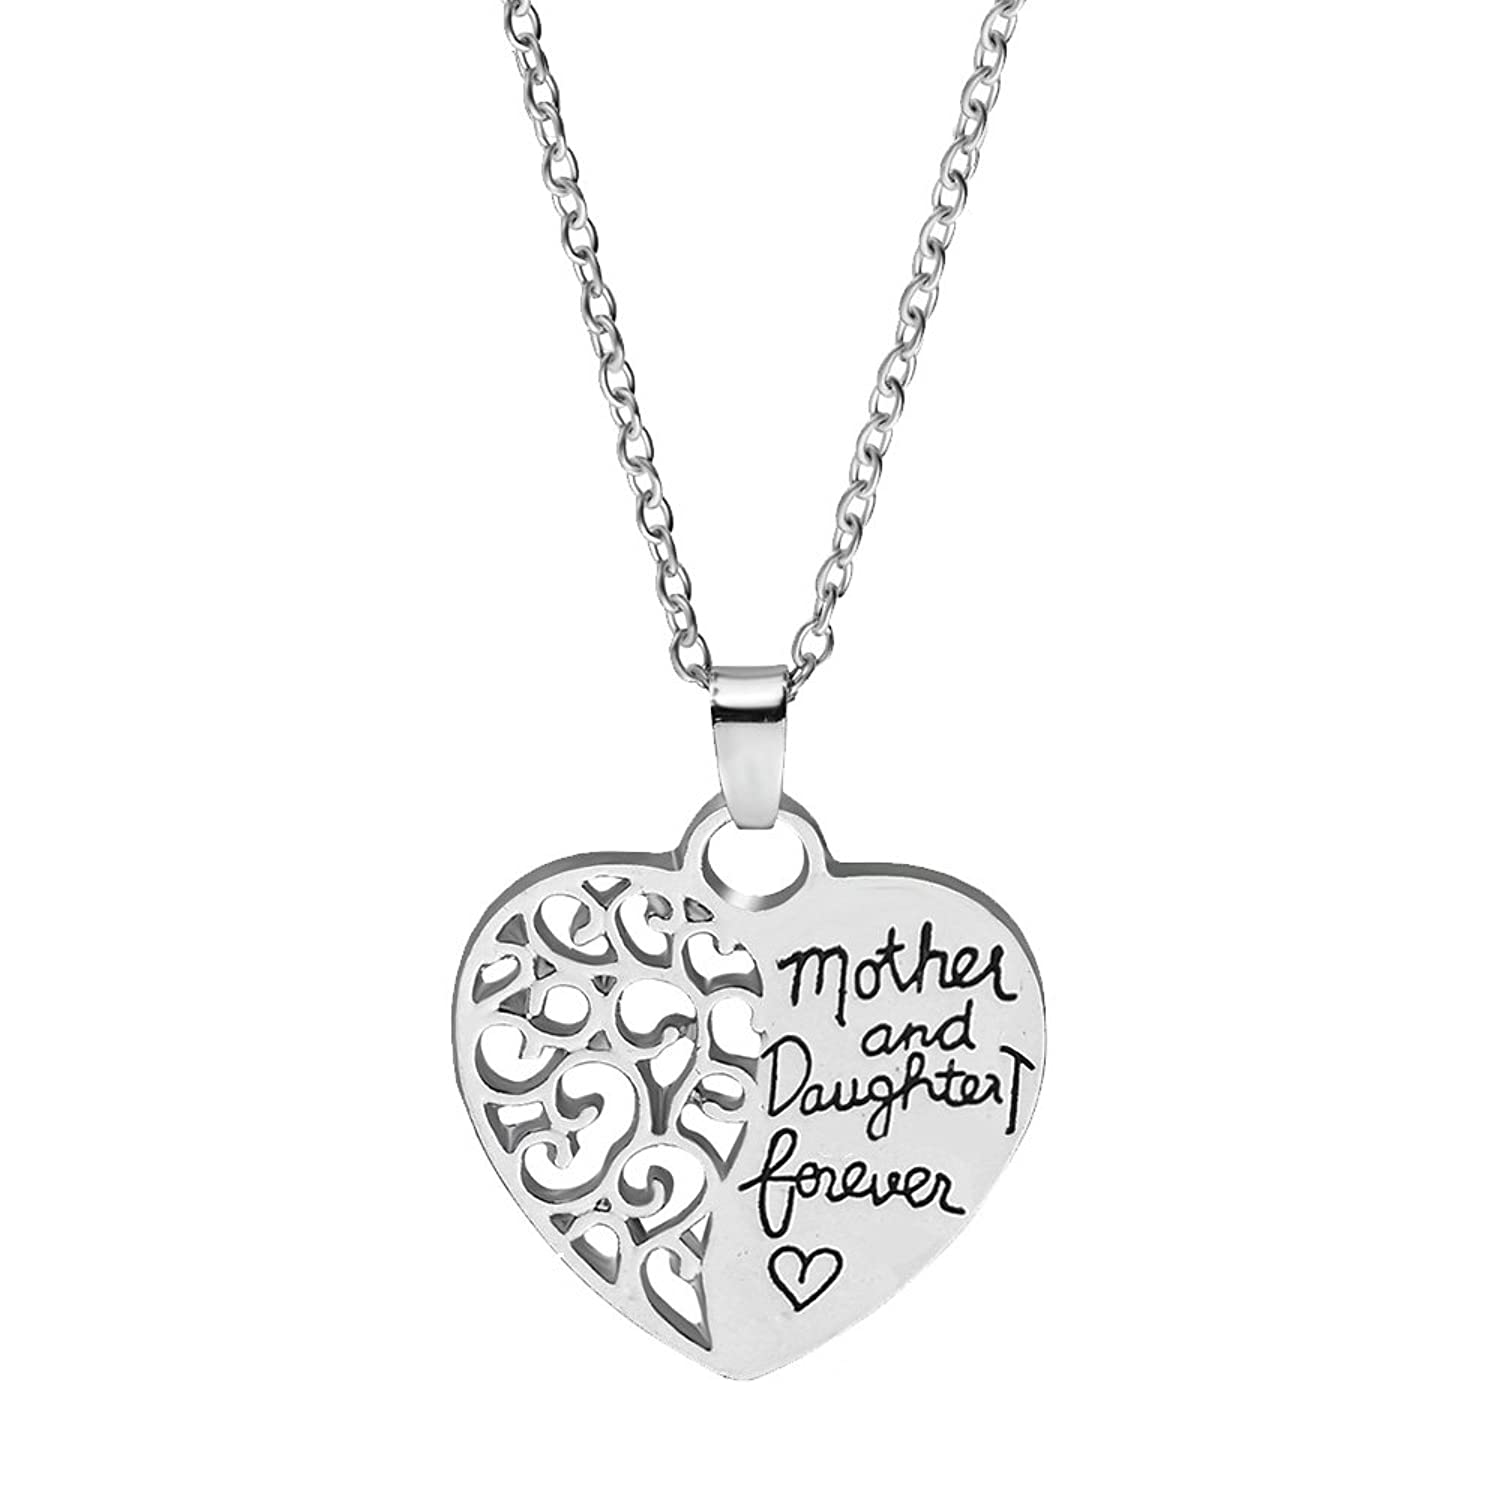 Mother And Daughter Forever - Hollow Heart Pendant Necklace - Best Family Gift